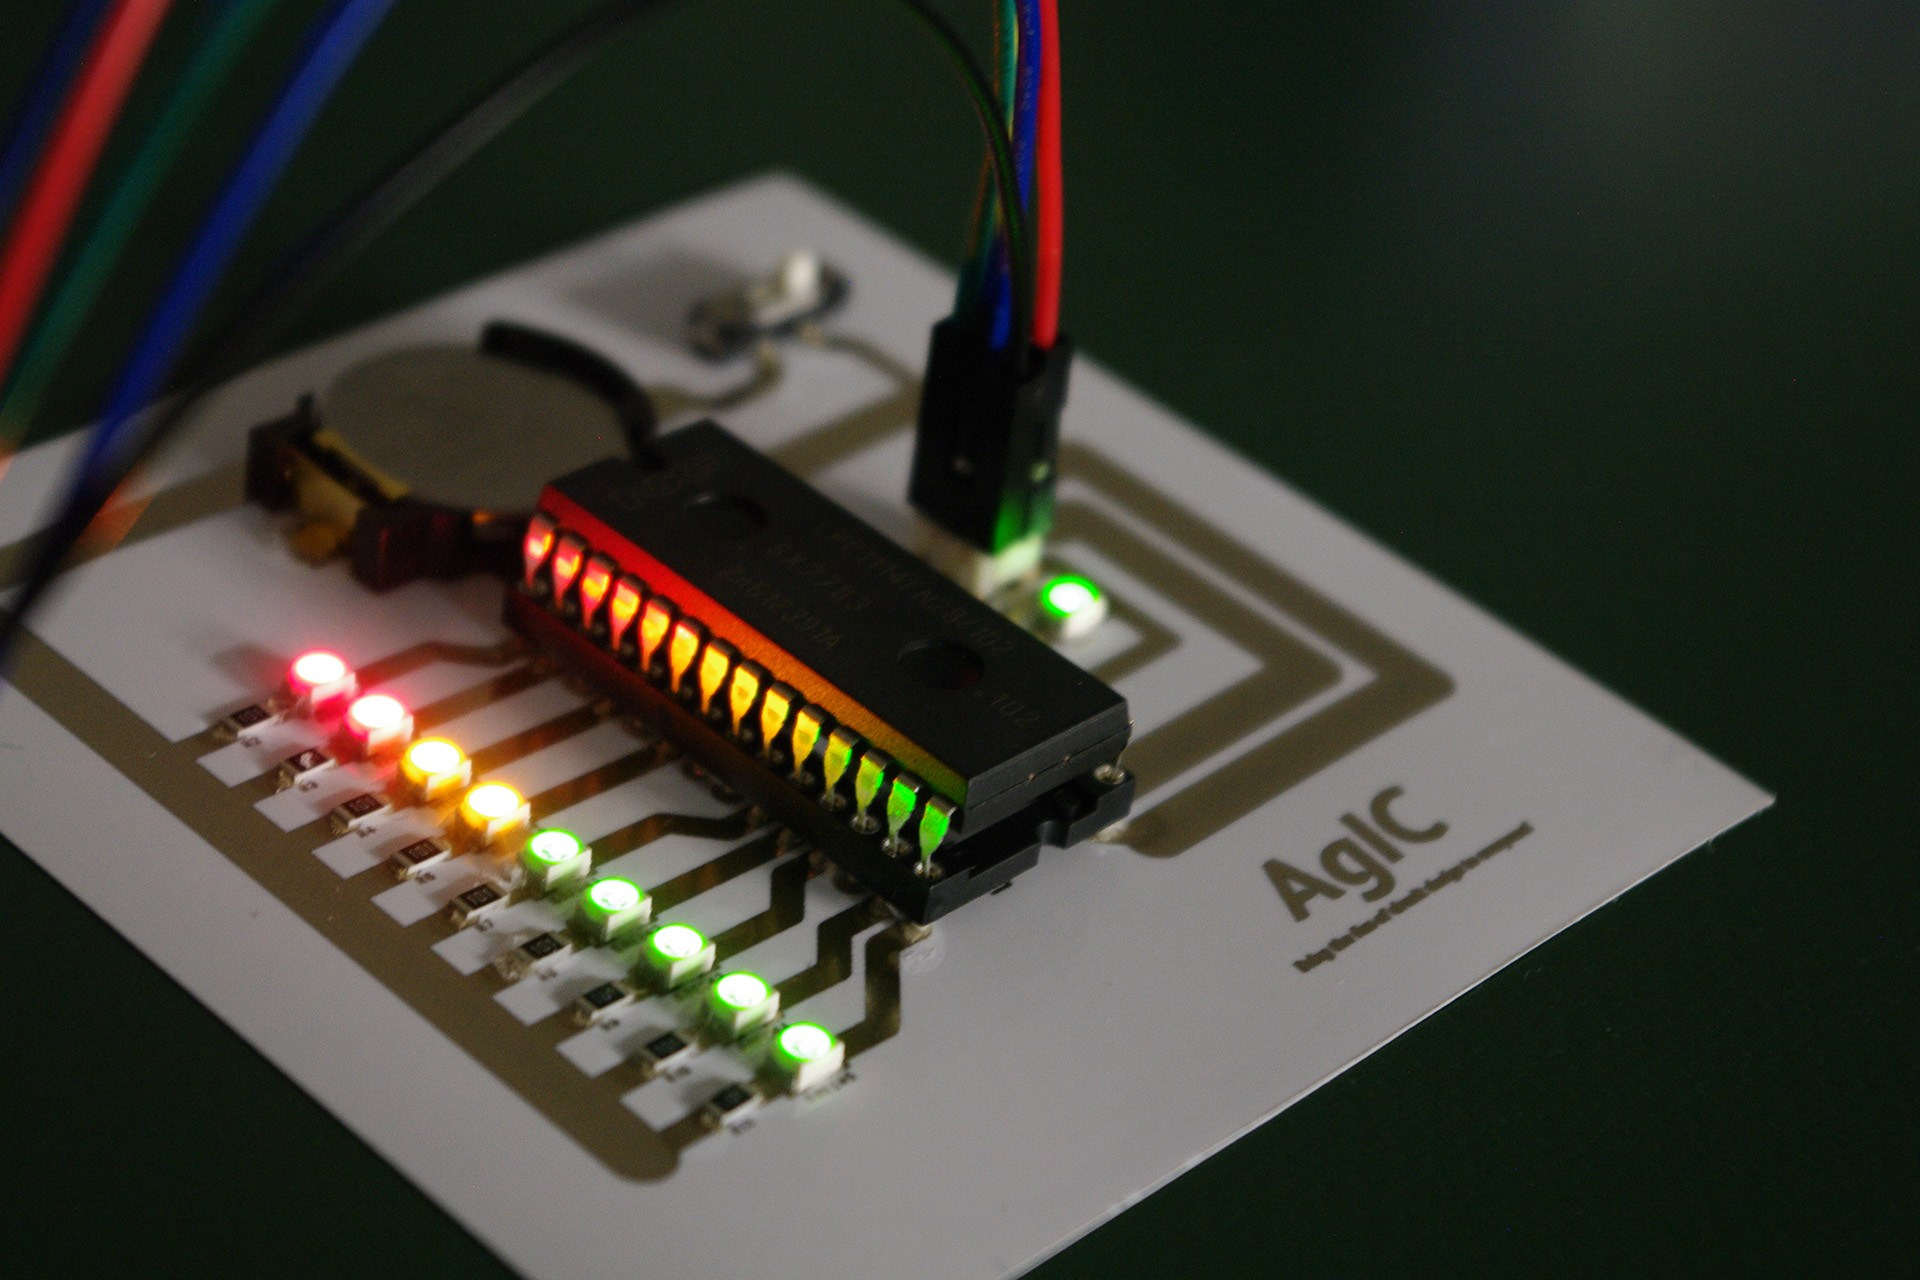 hight resolution of agic s technology uses silver nanoparticles to create homemade circuit boards printedcircuit